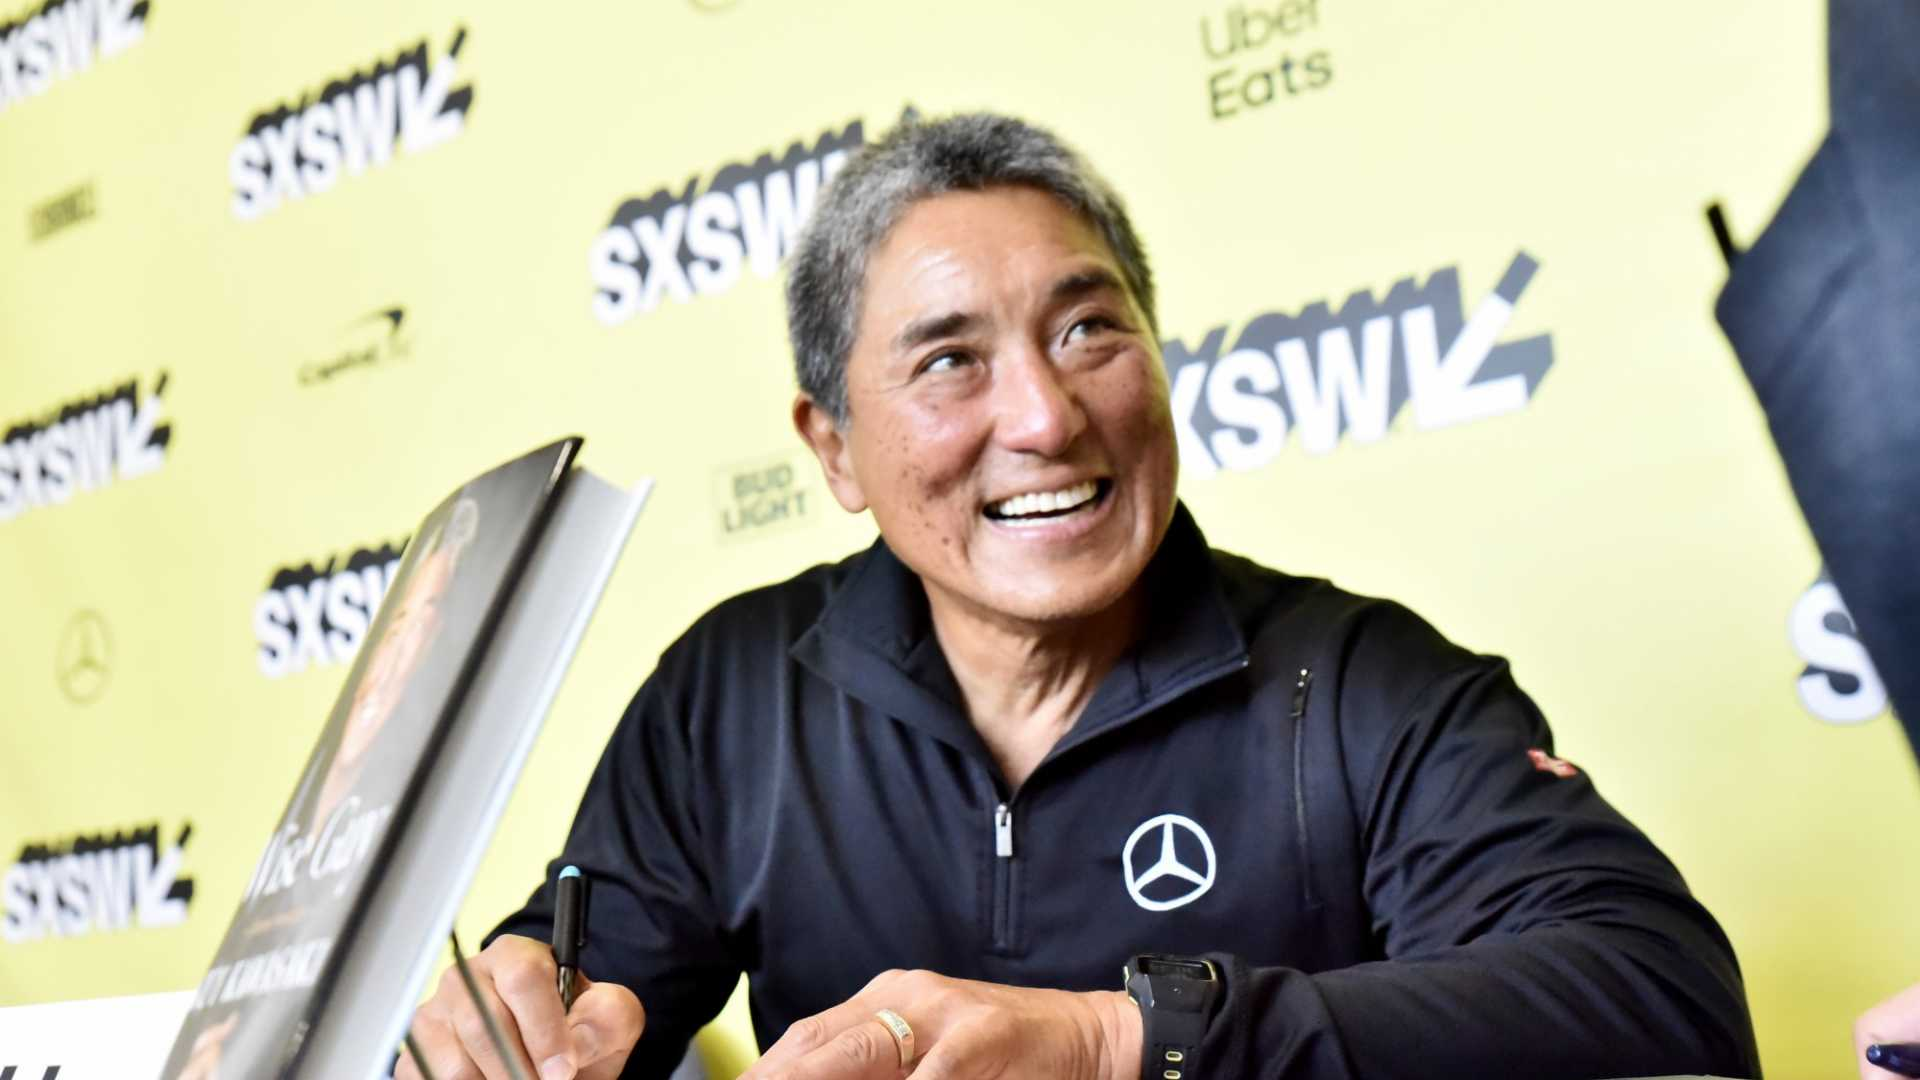 Guy Kawasaki Says Nearly Every Entrepreneur Makes This 1 Mistake When Pitching Their Startup